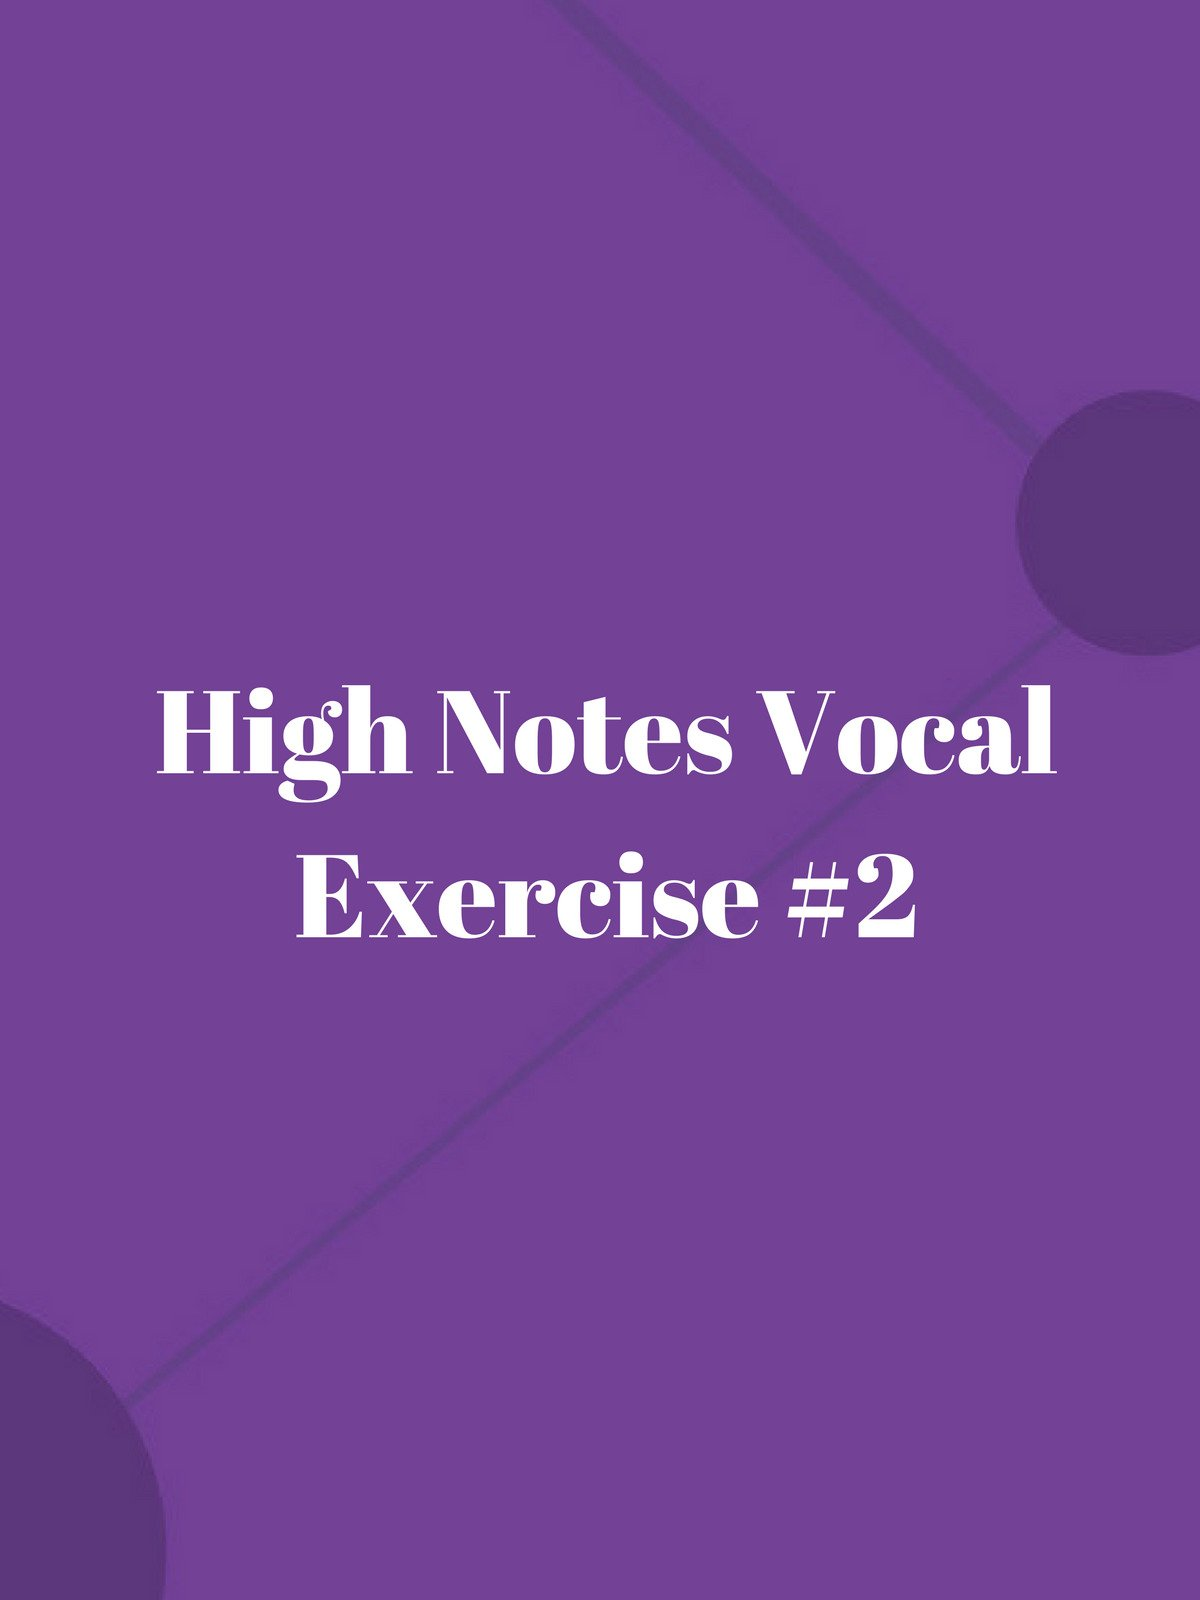 High Notes Vocal Exercise #2